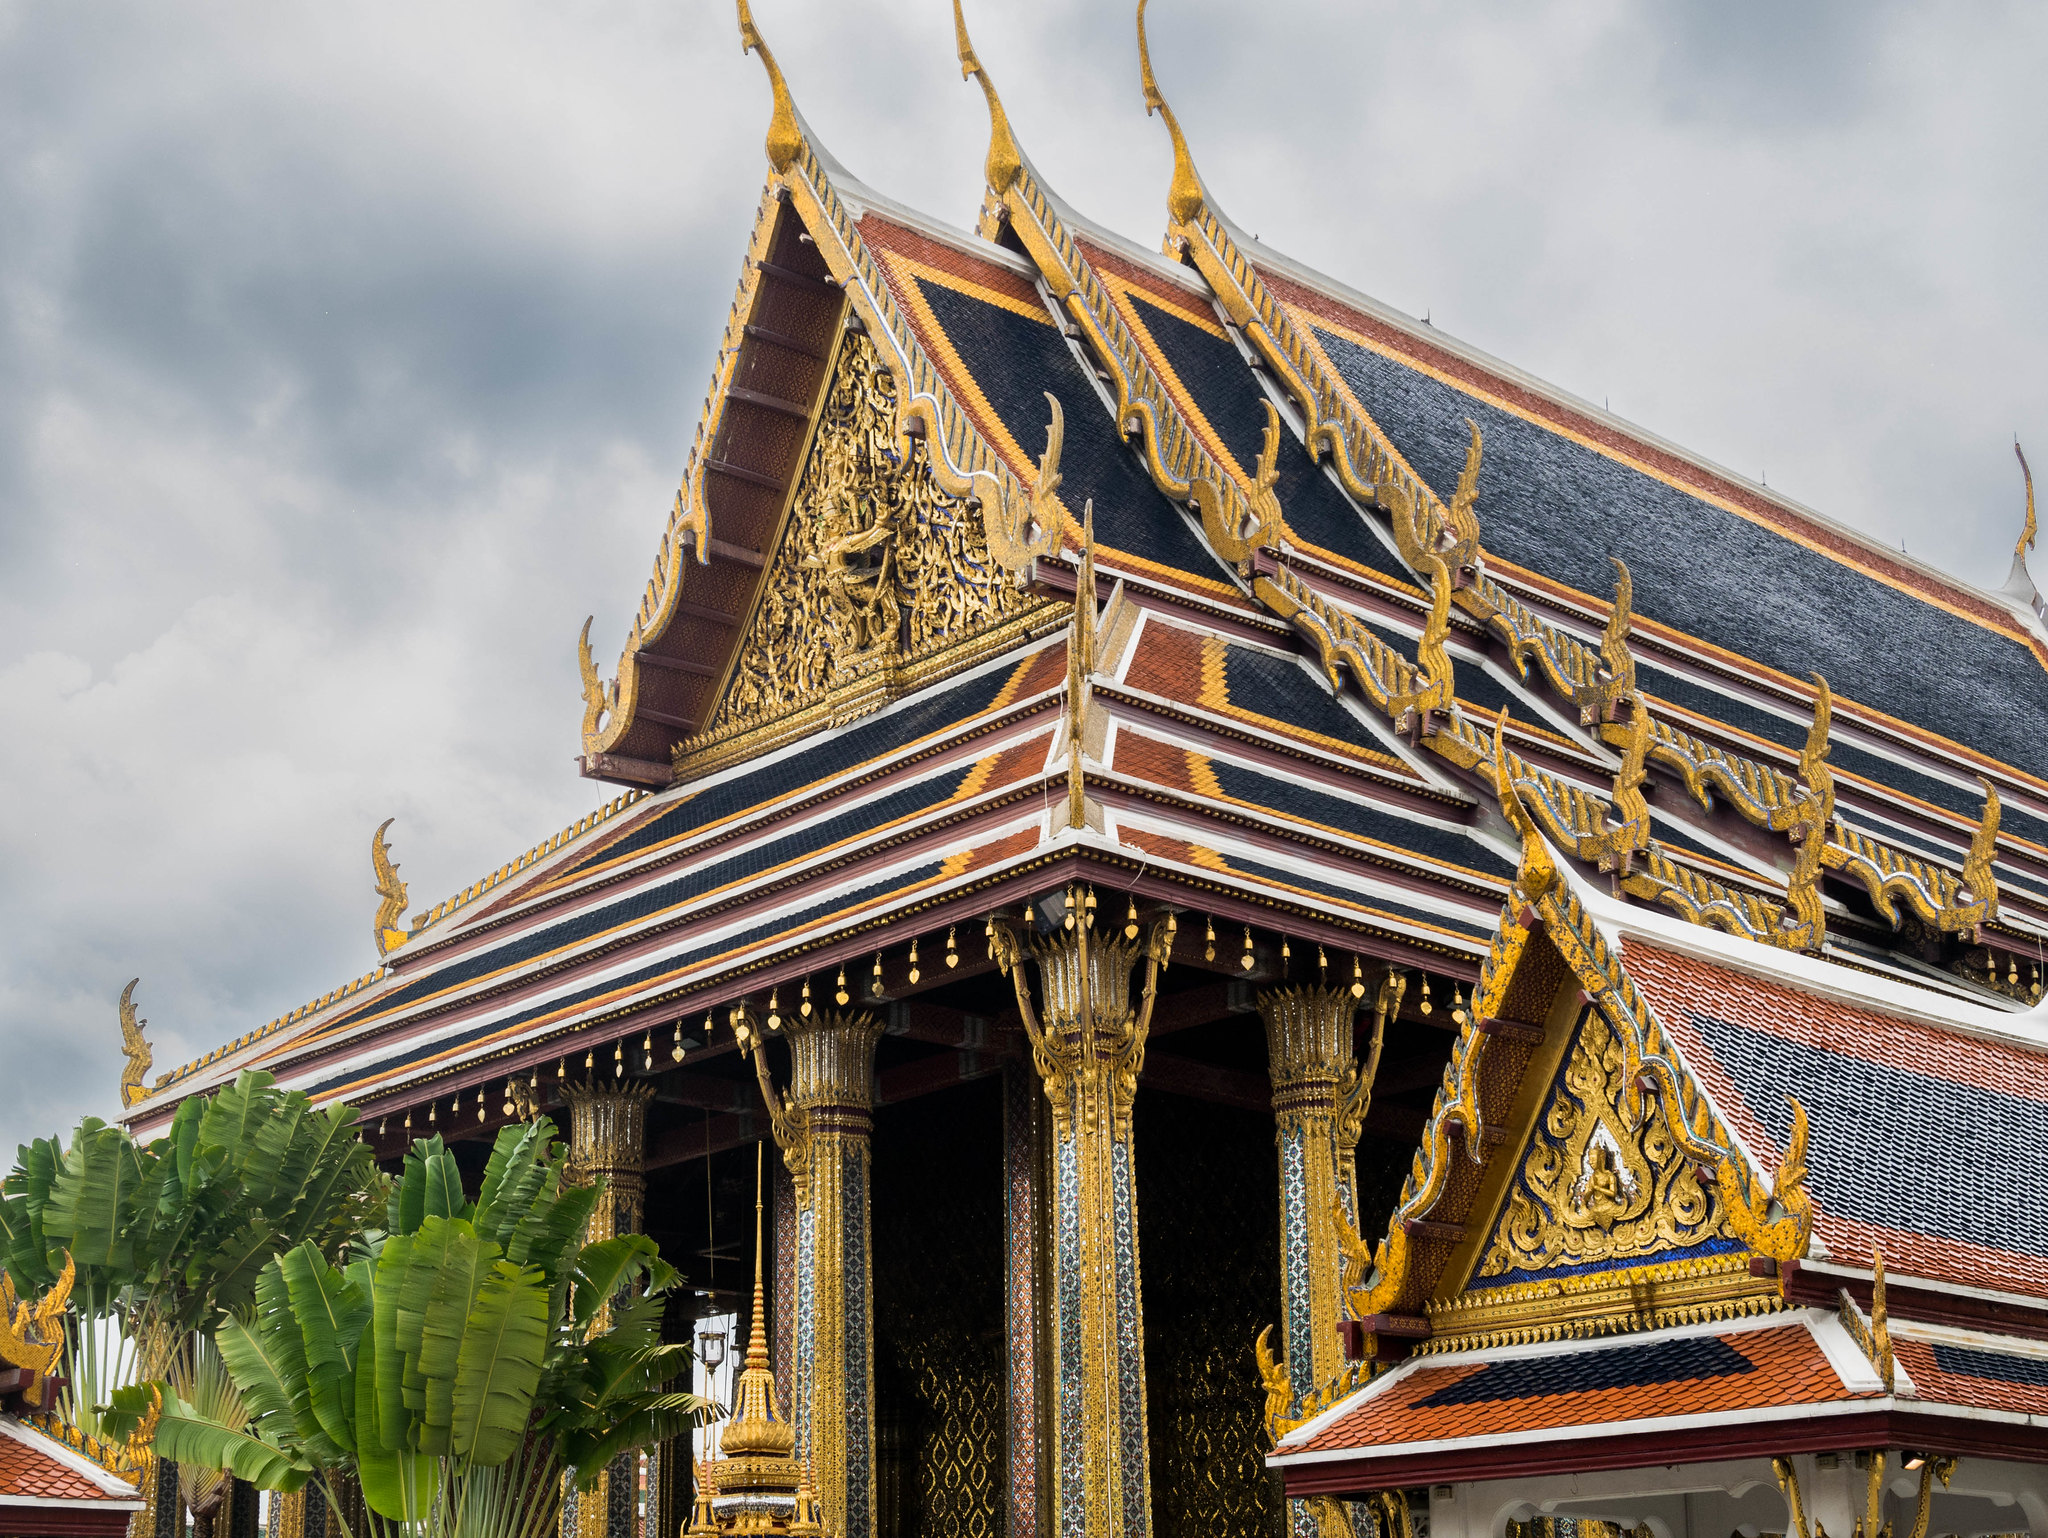 Colorful monument at Grand Palace